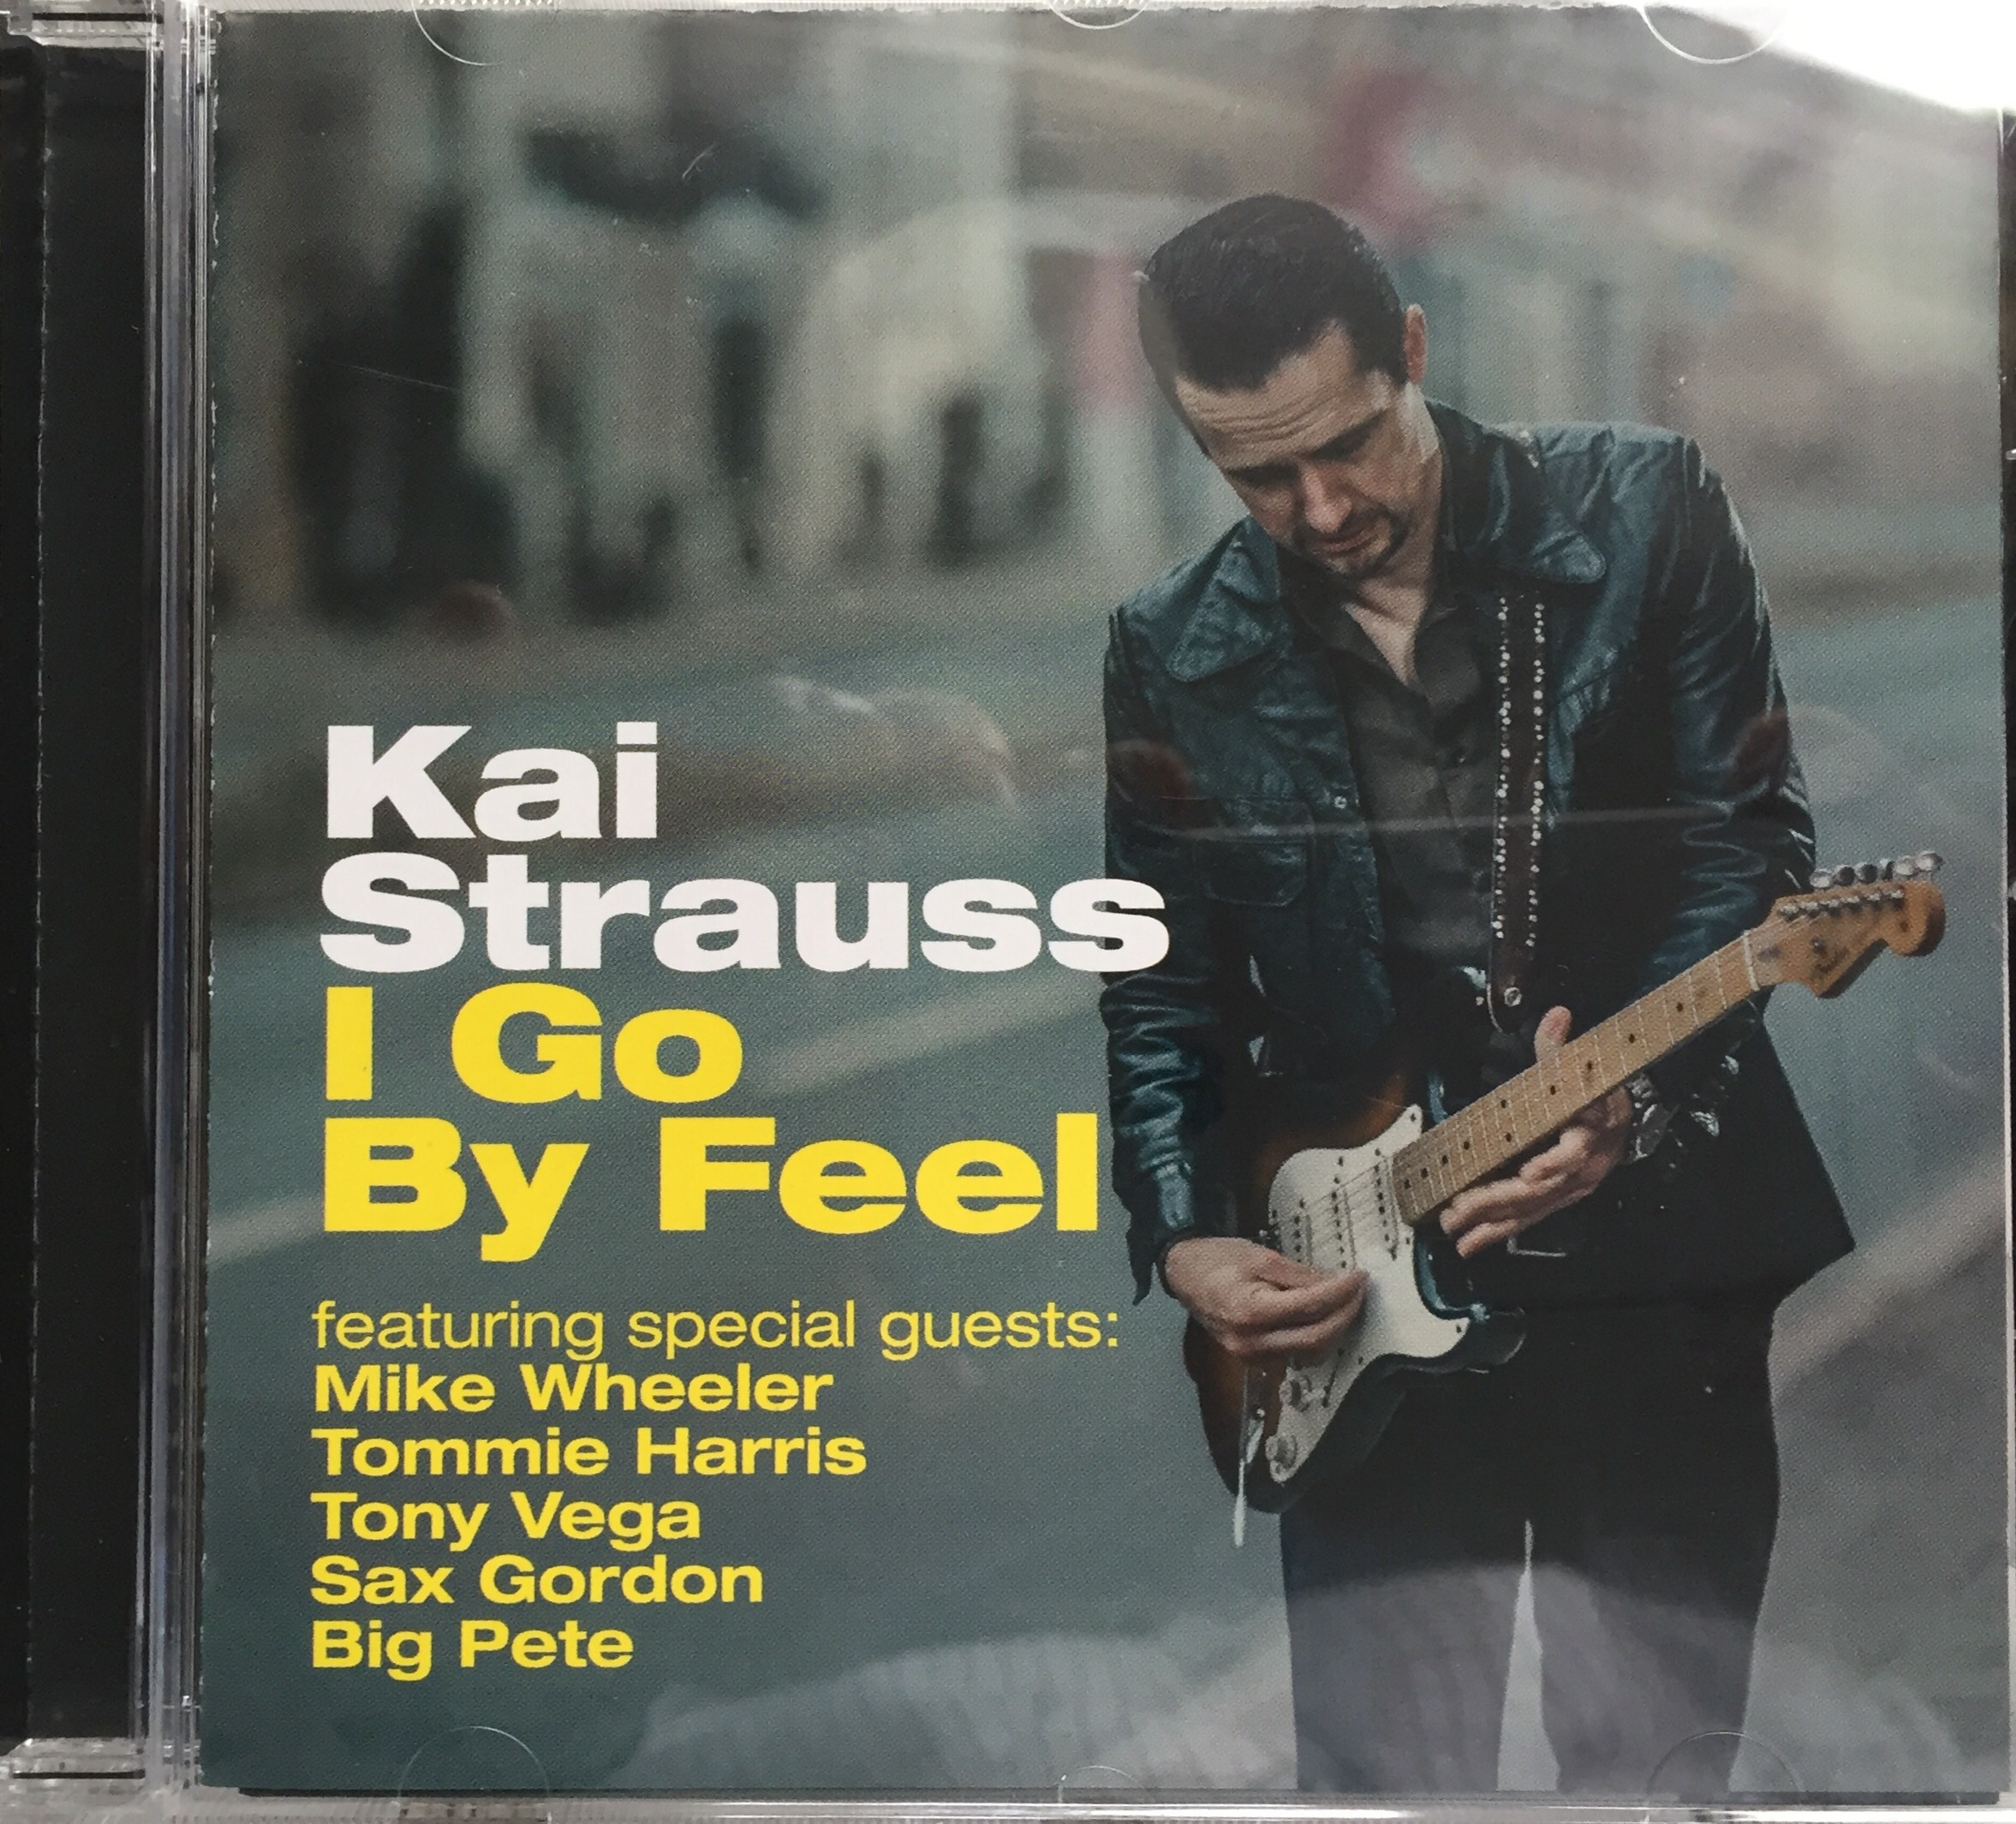 Kai Strauss - I Go By Feel